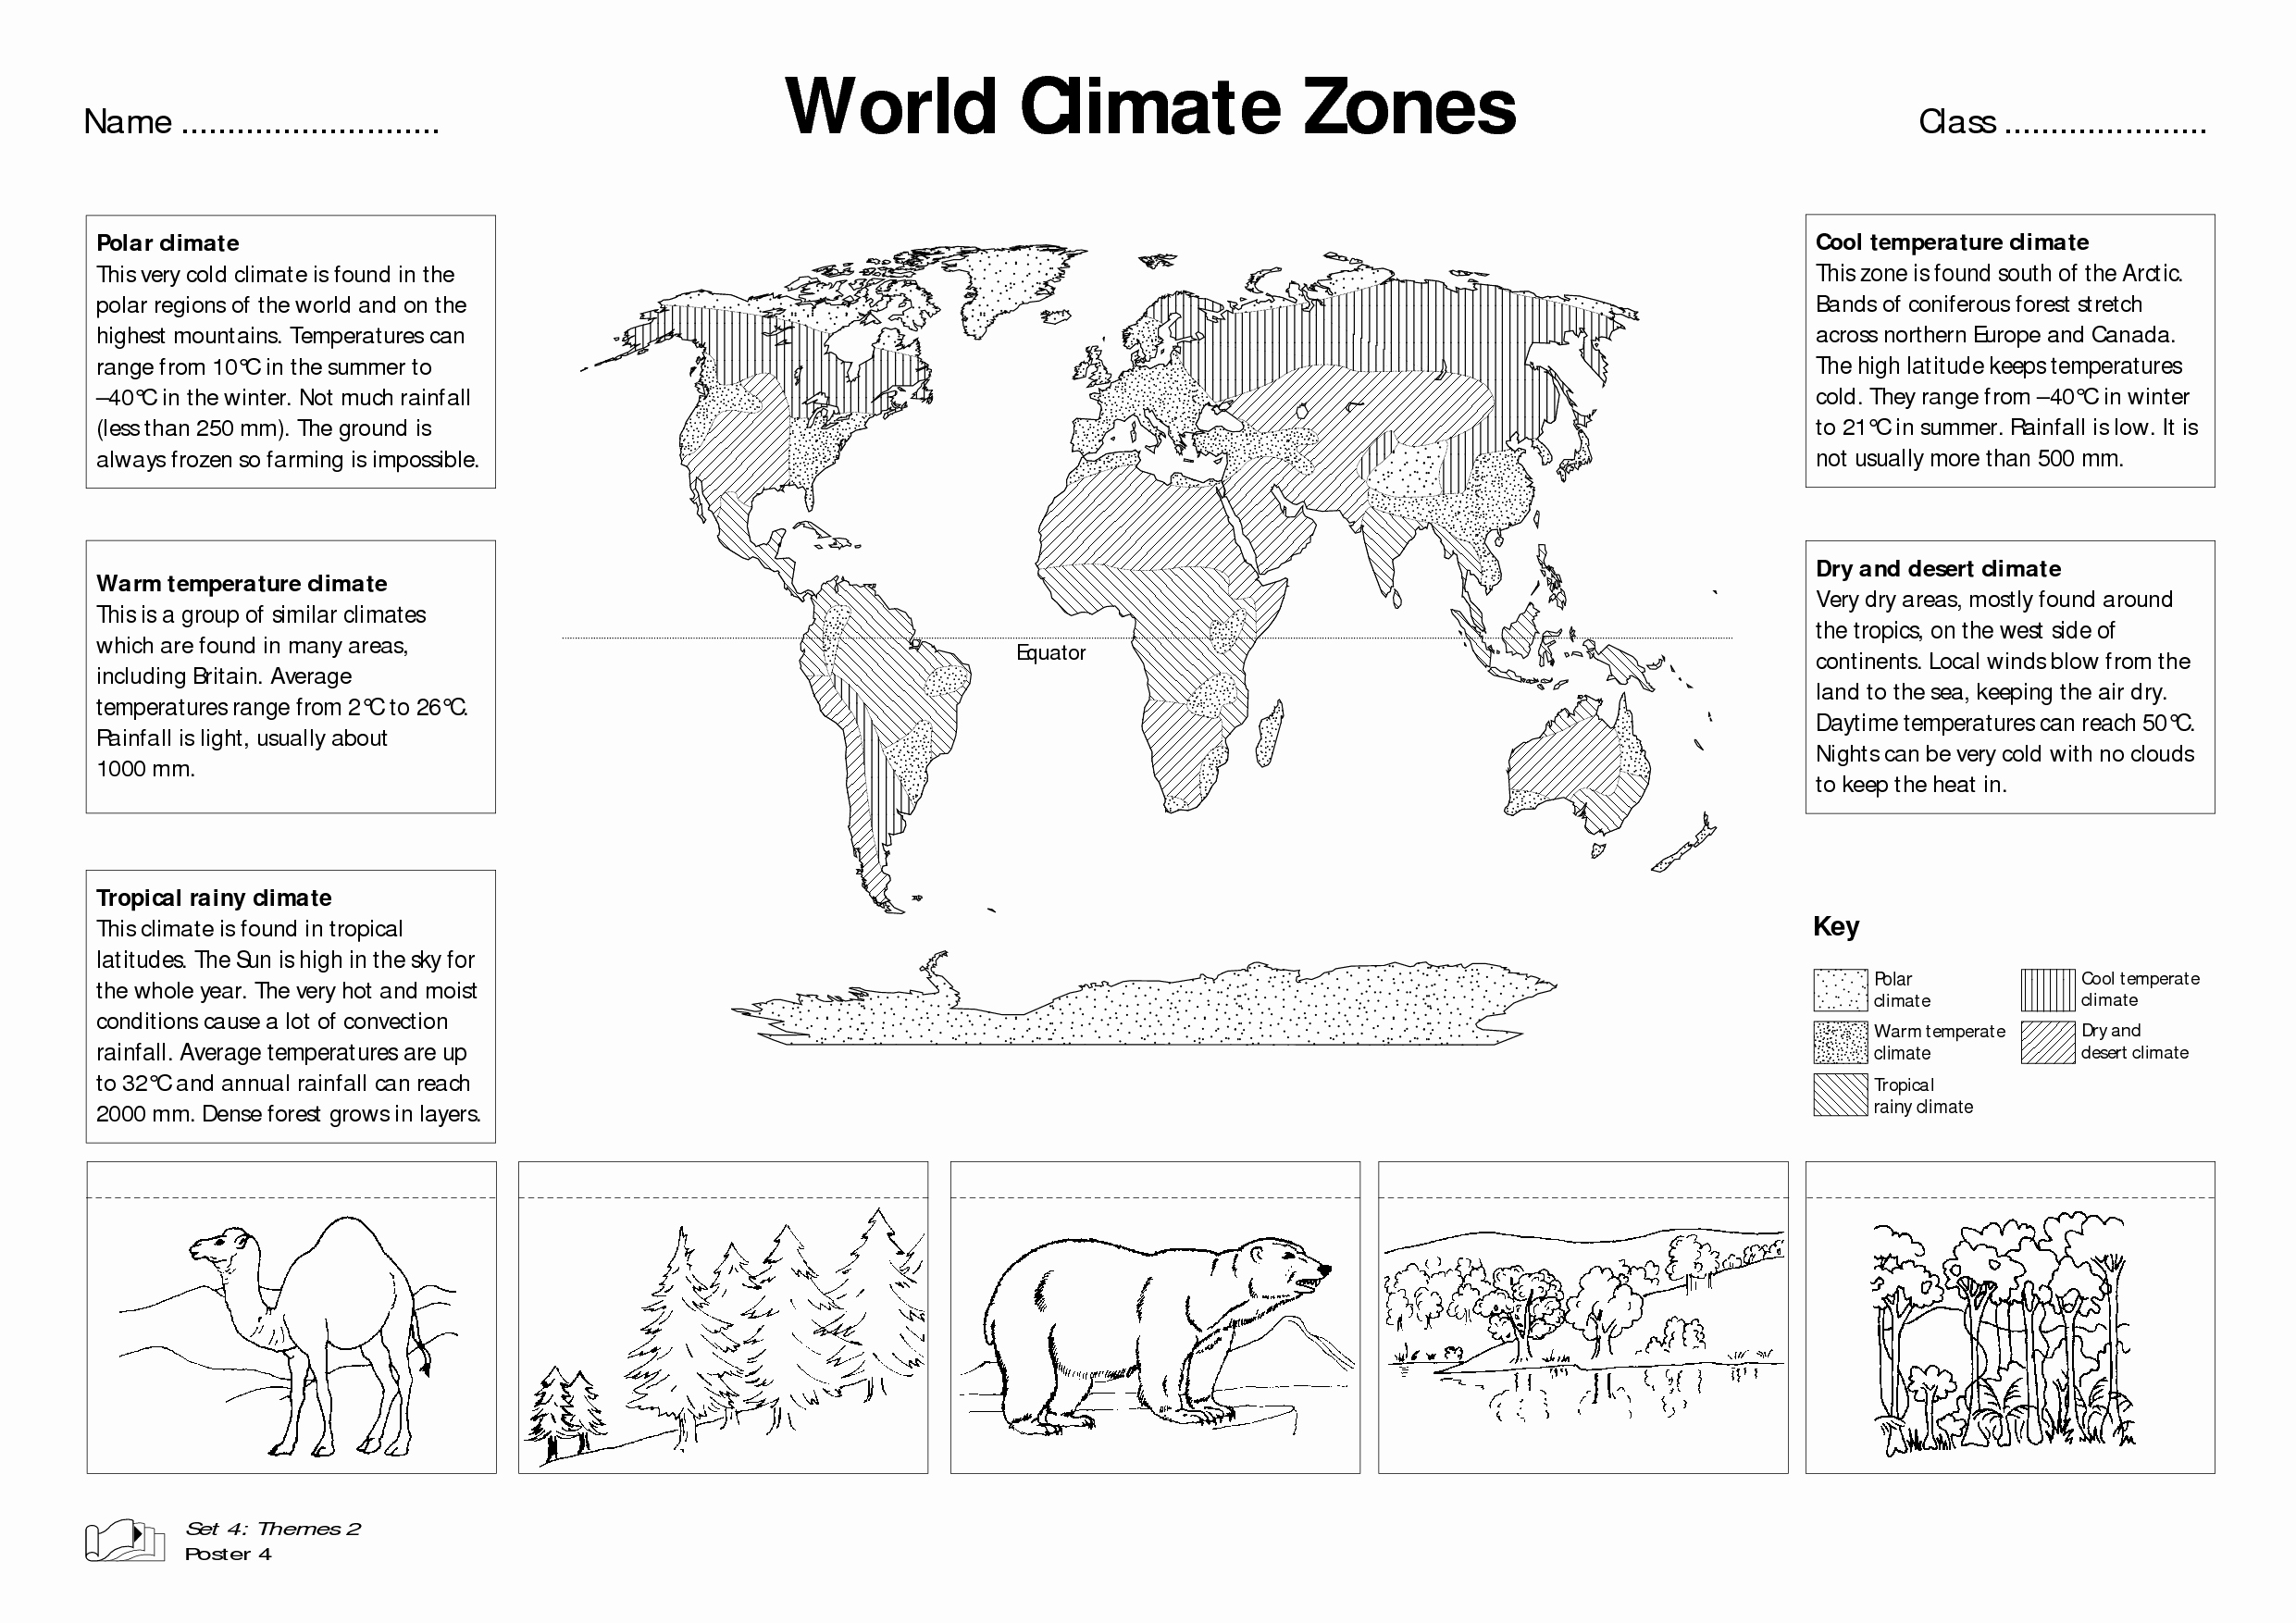 World Biome Map Coloring Worksheet Unique World Climate Zones for Kids Worksheets Google Search